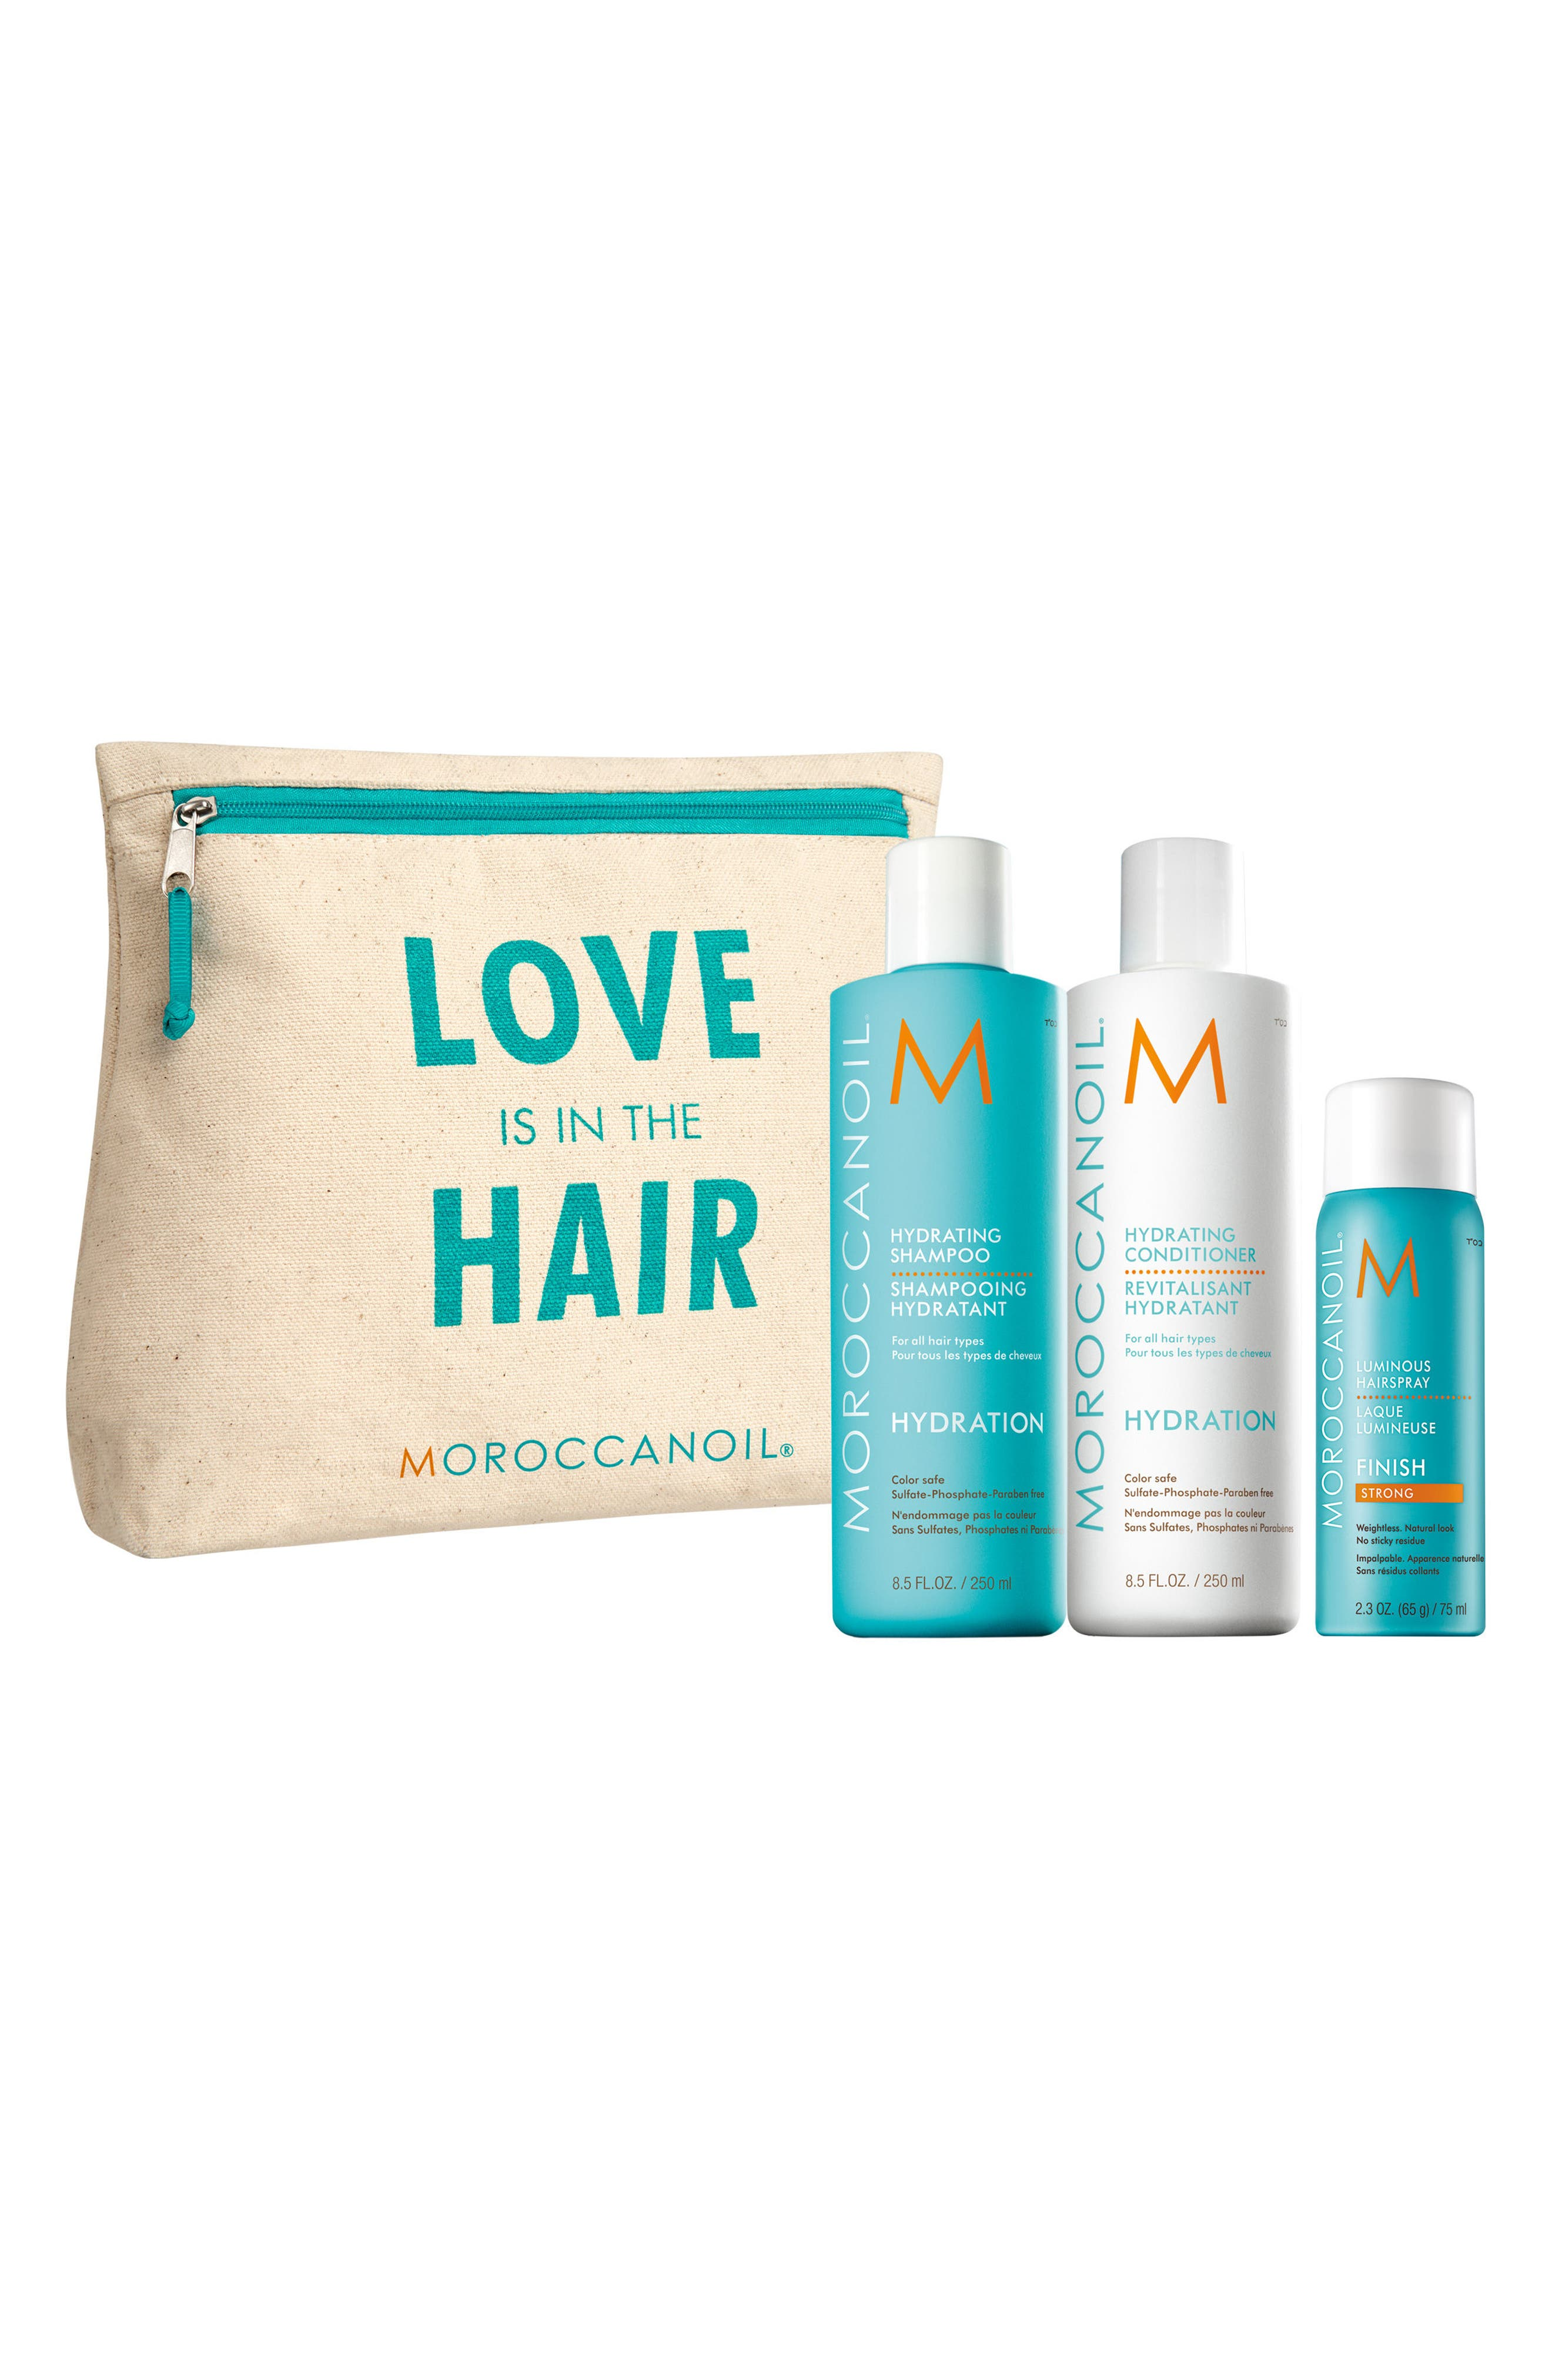 MOROCCANOIL® Love is in the Hair Hydration Set ($57 Value)